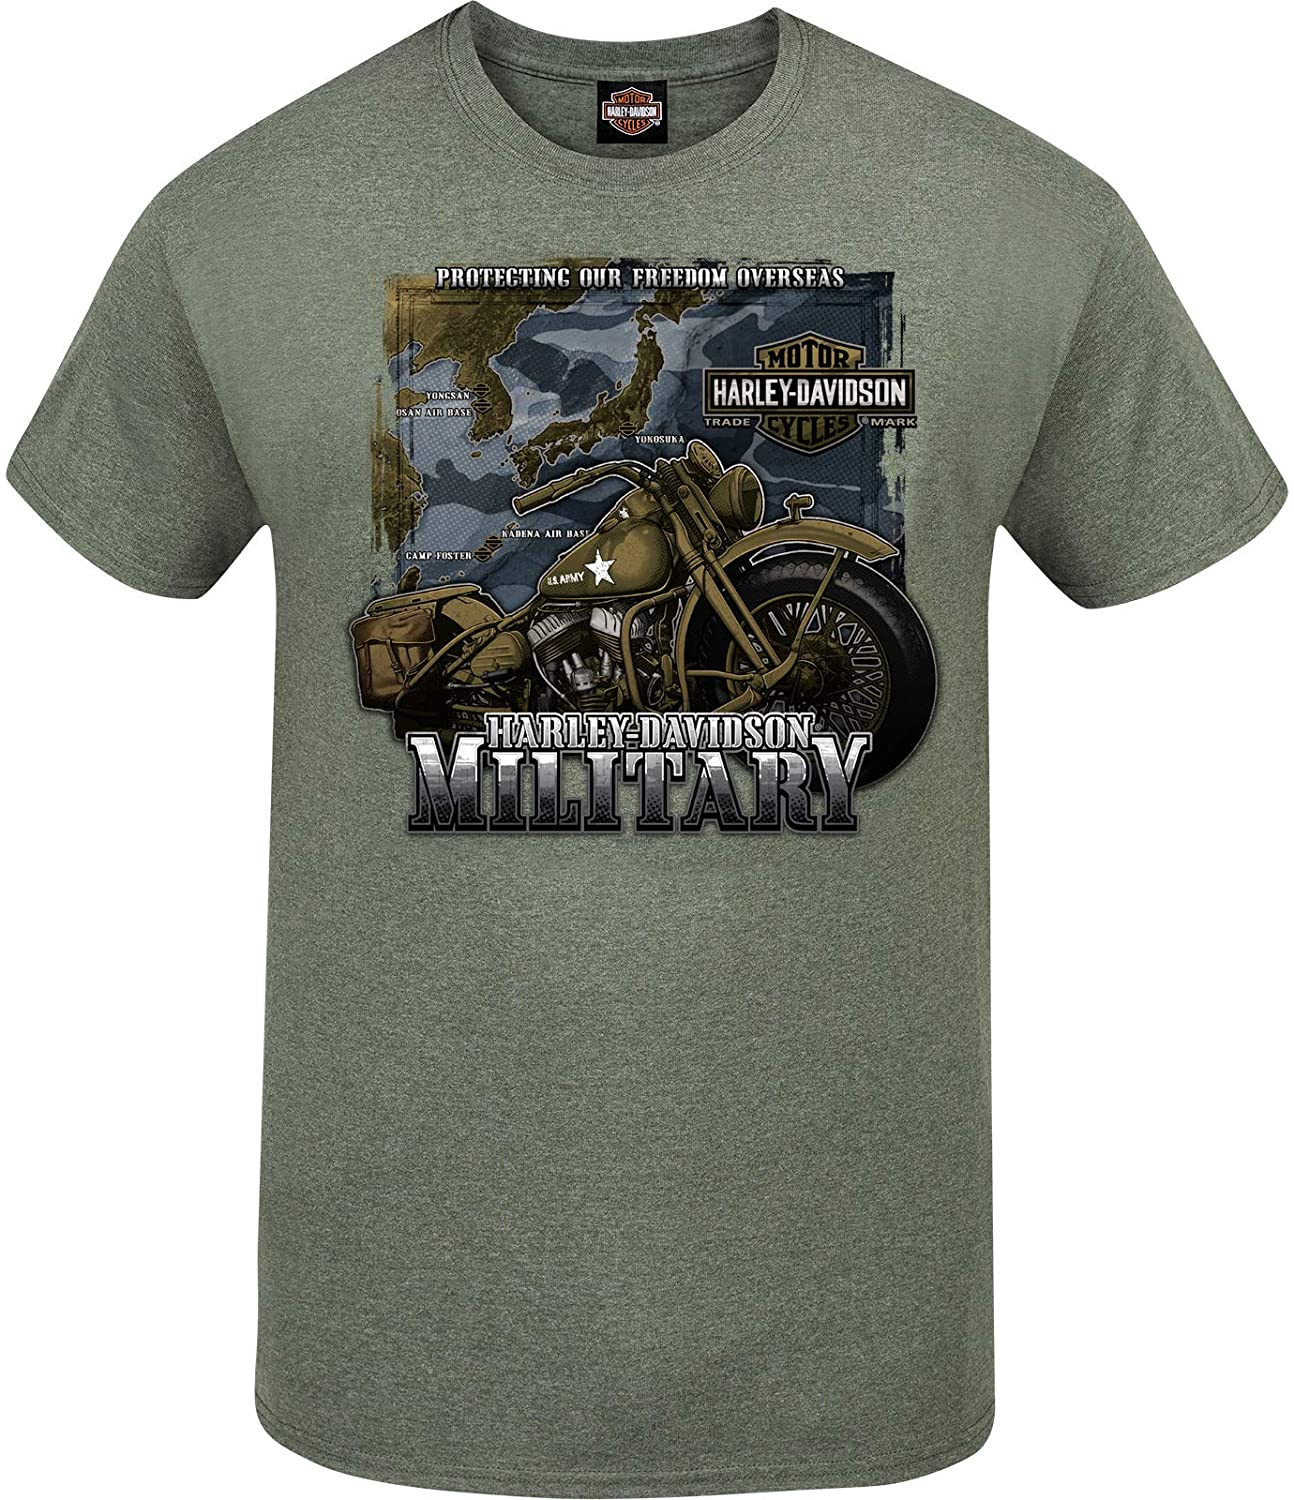 HARLEY-DAVIDSON Military - Camiseta para Hombre, diseño de Tour of Duty Pacific - Verde - 3X-Large: Amazon.es: Ropa y accesorios